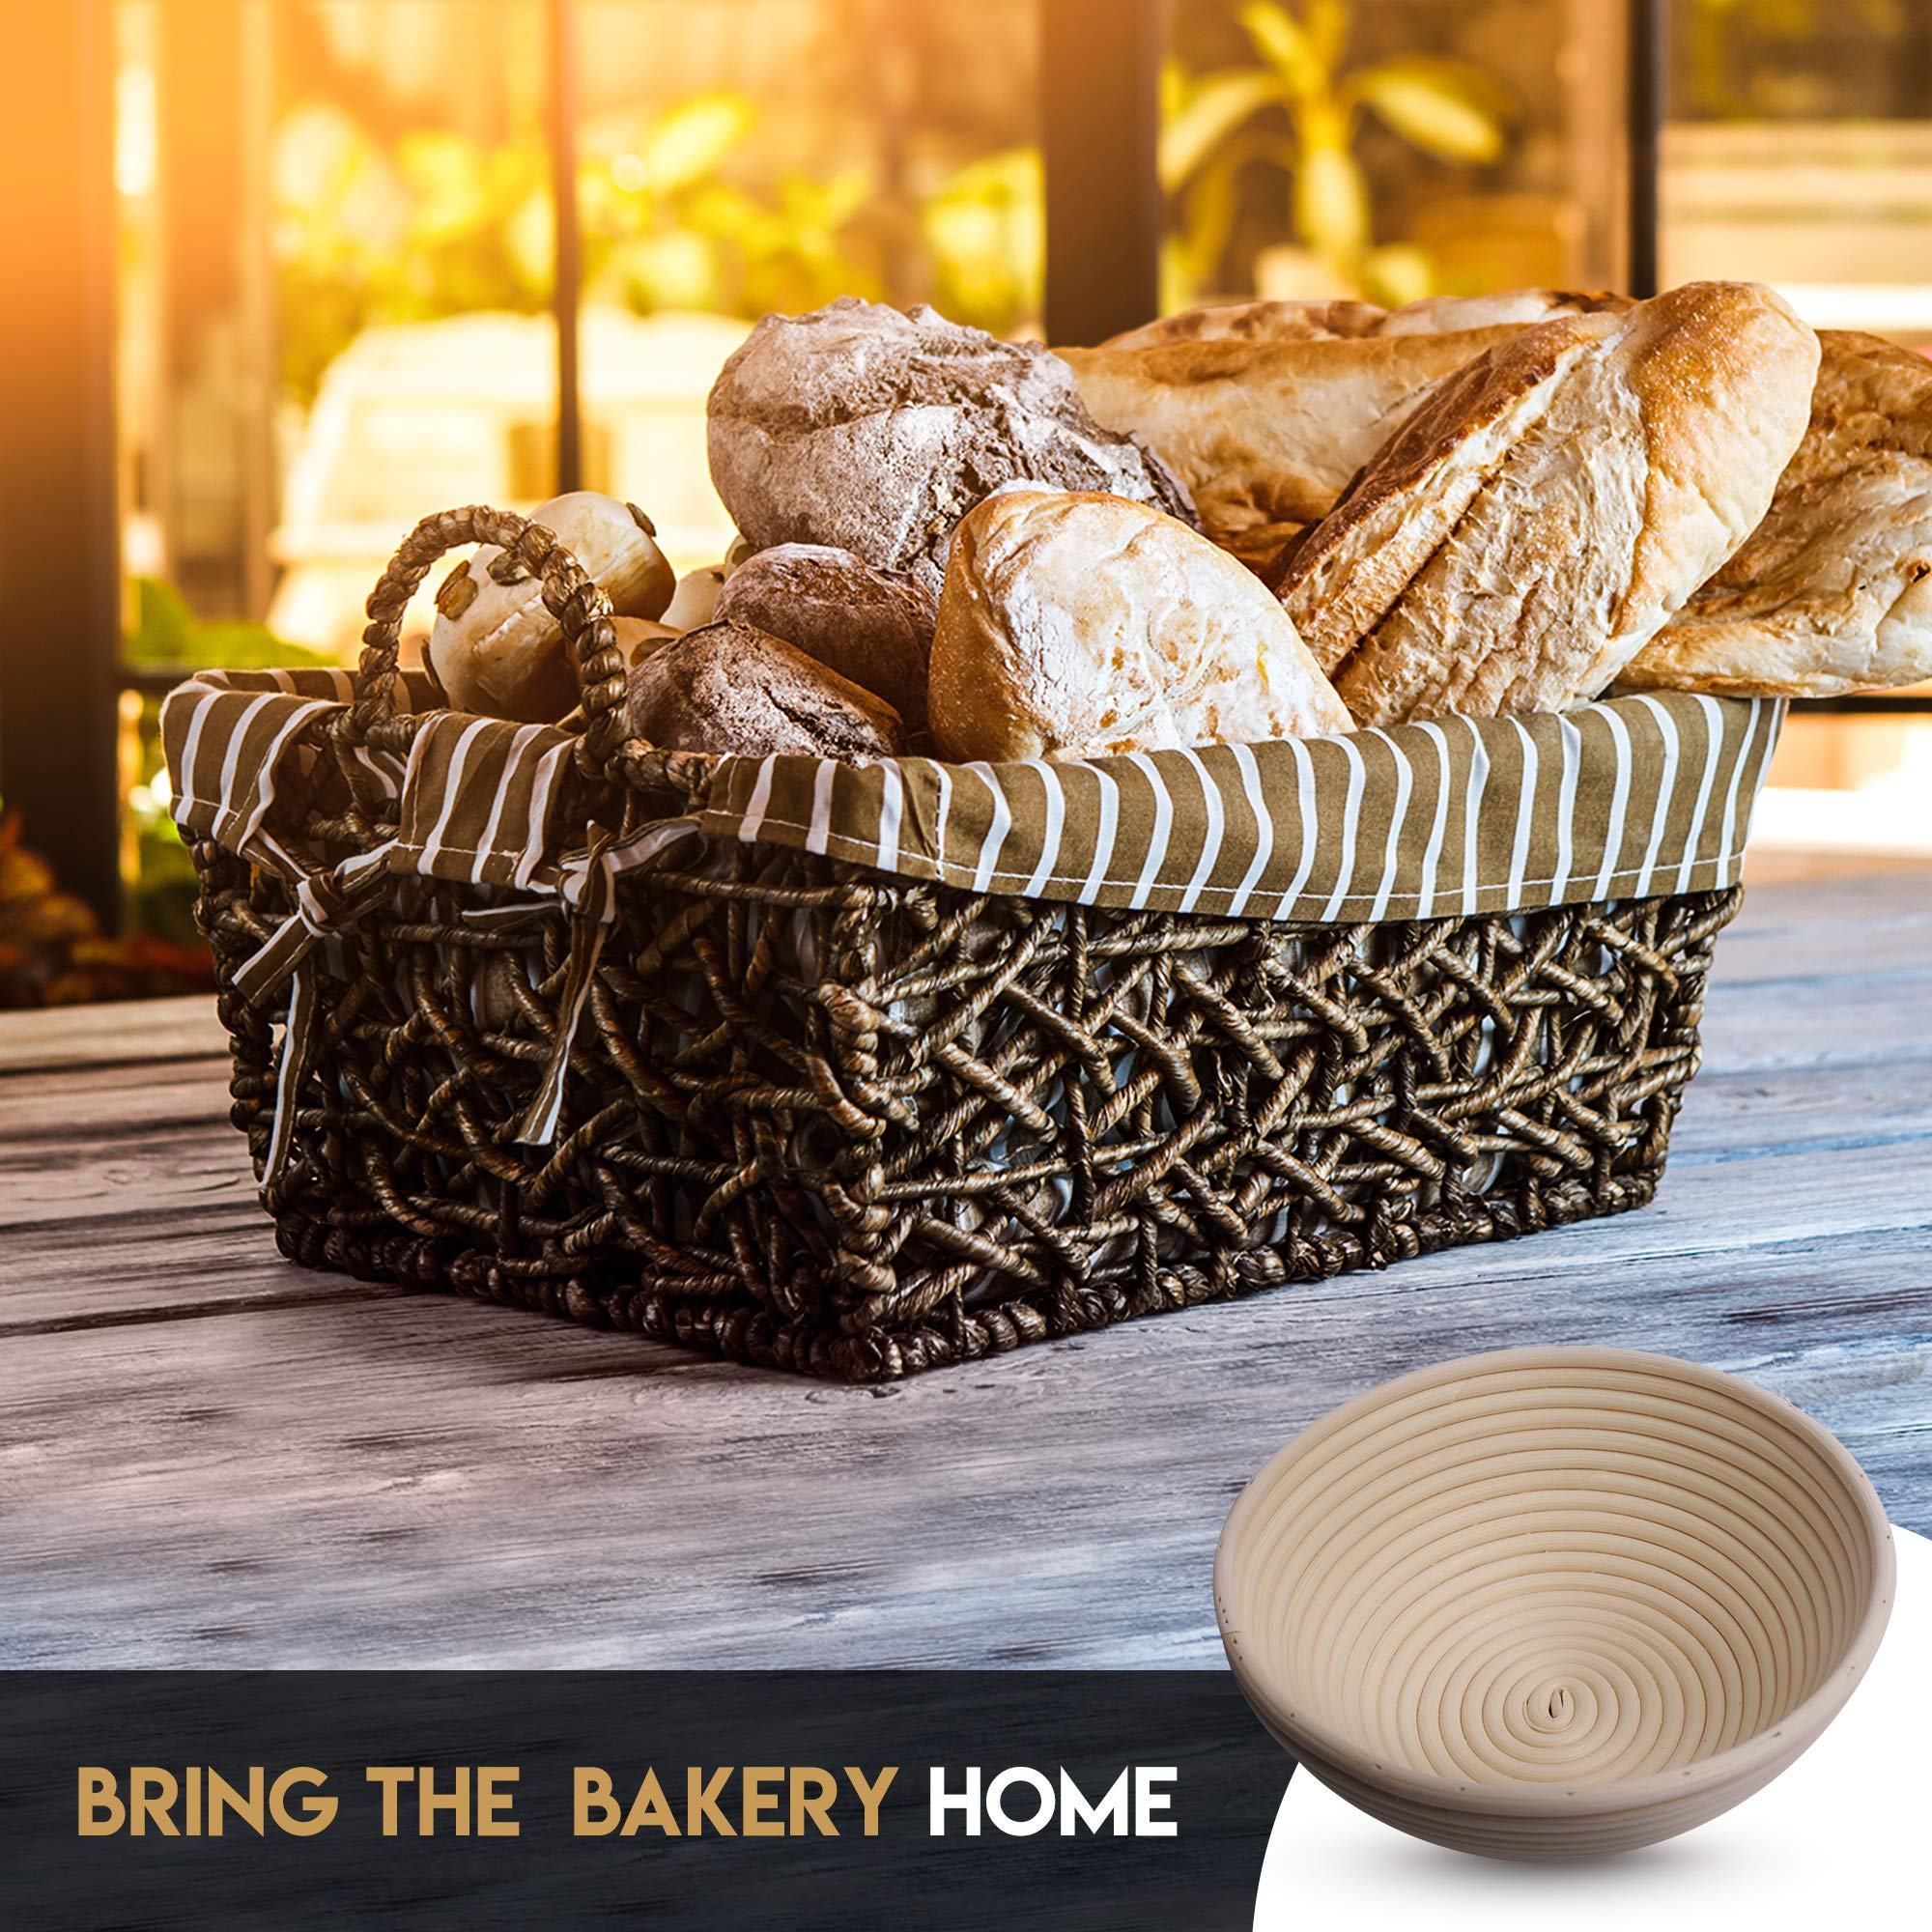 Banneton Bread Proofing Basket By Caesar Bread, 9 Inch Round Sourdough Brotform For Rising Dough Set, Include Cloth Liner, Scraper, Bread Lame, Brush & Recipe Book For Beginners & Professional Bakers by Caesar Bread (Image #6)